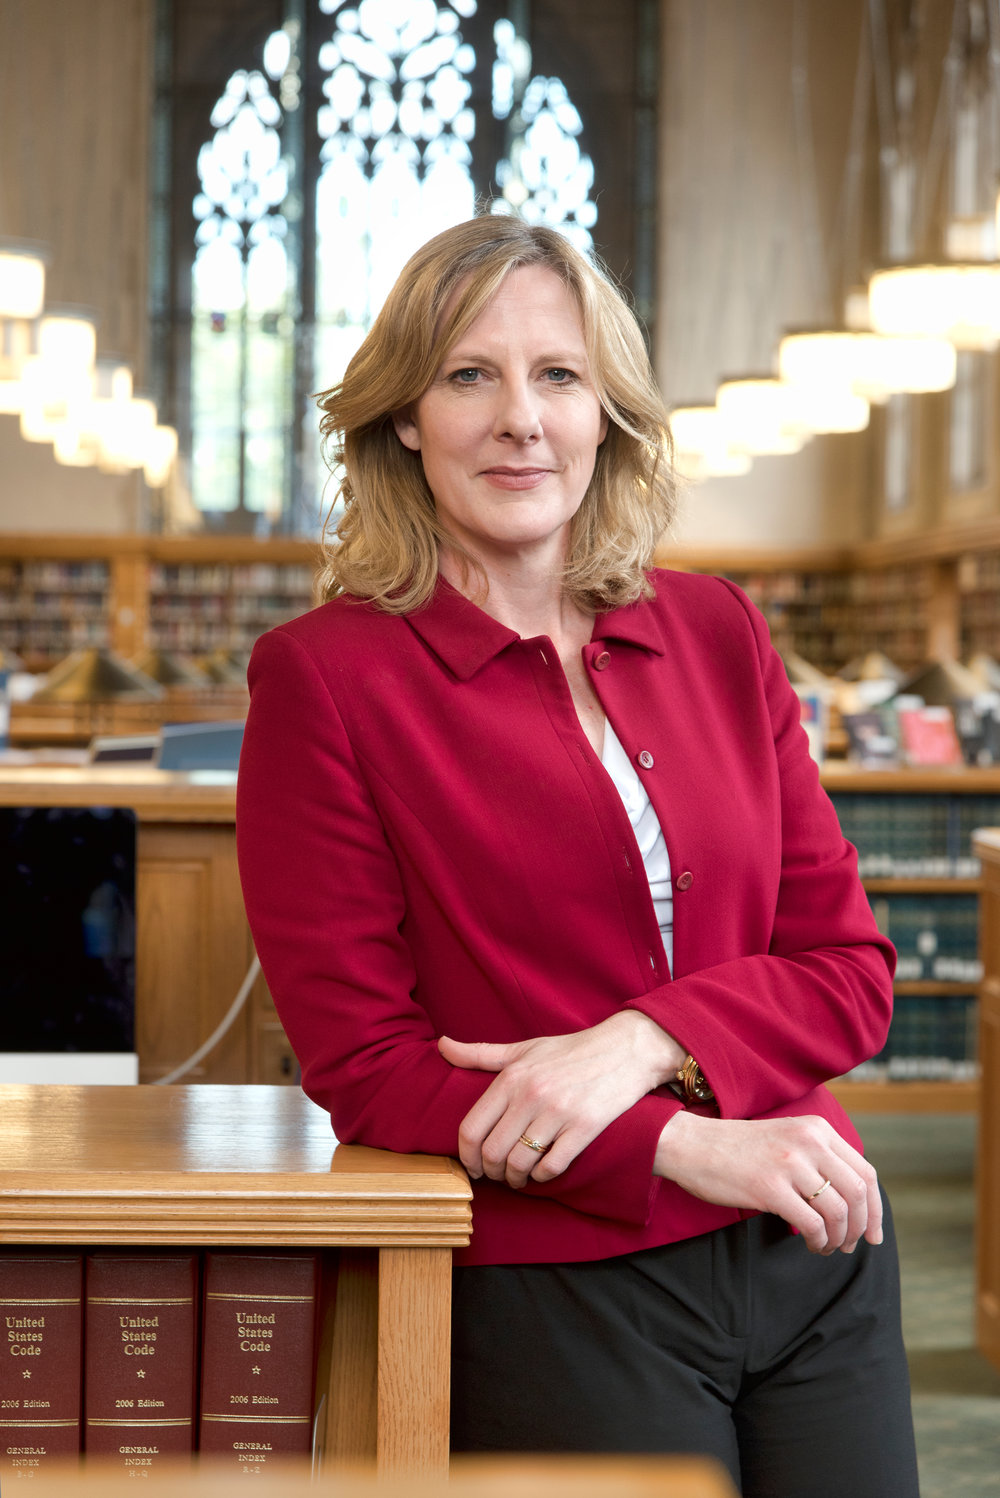 Heather Gerken, Dean & Professor of Law, Yale University